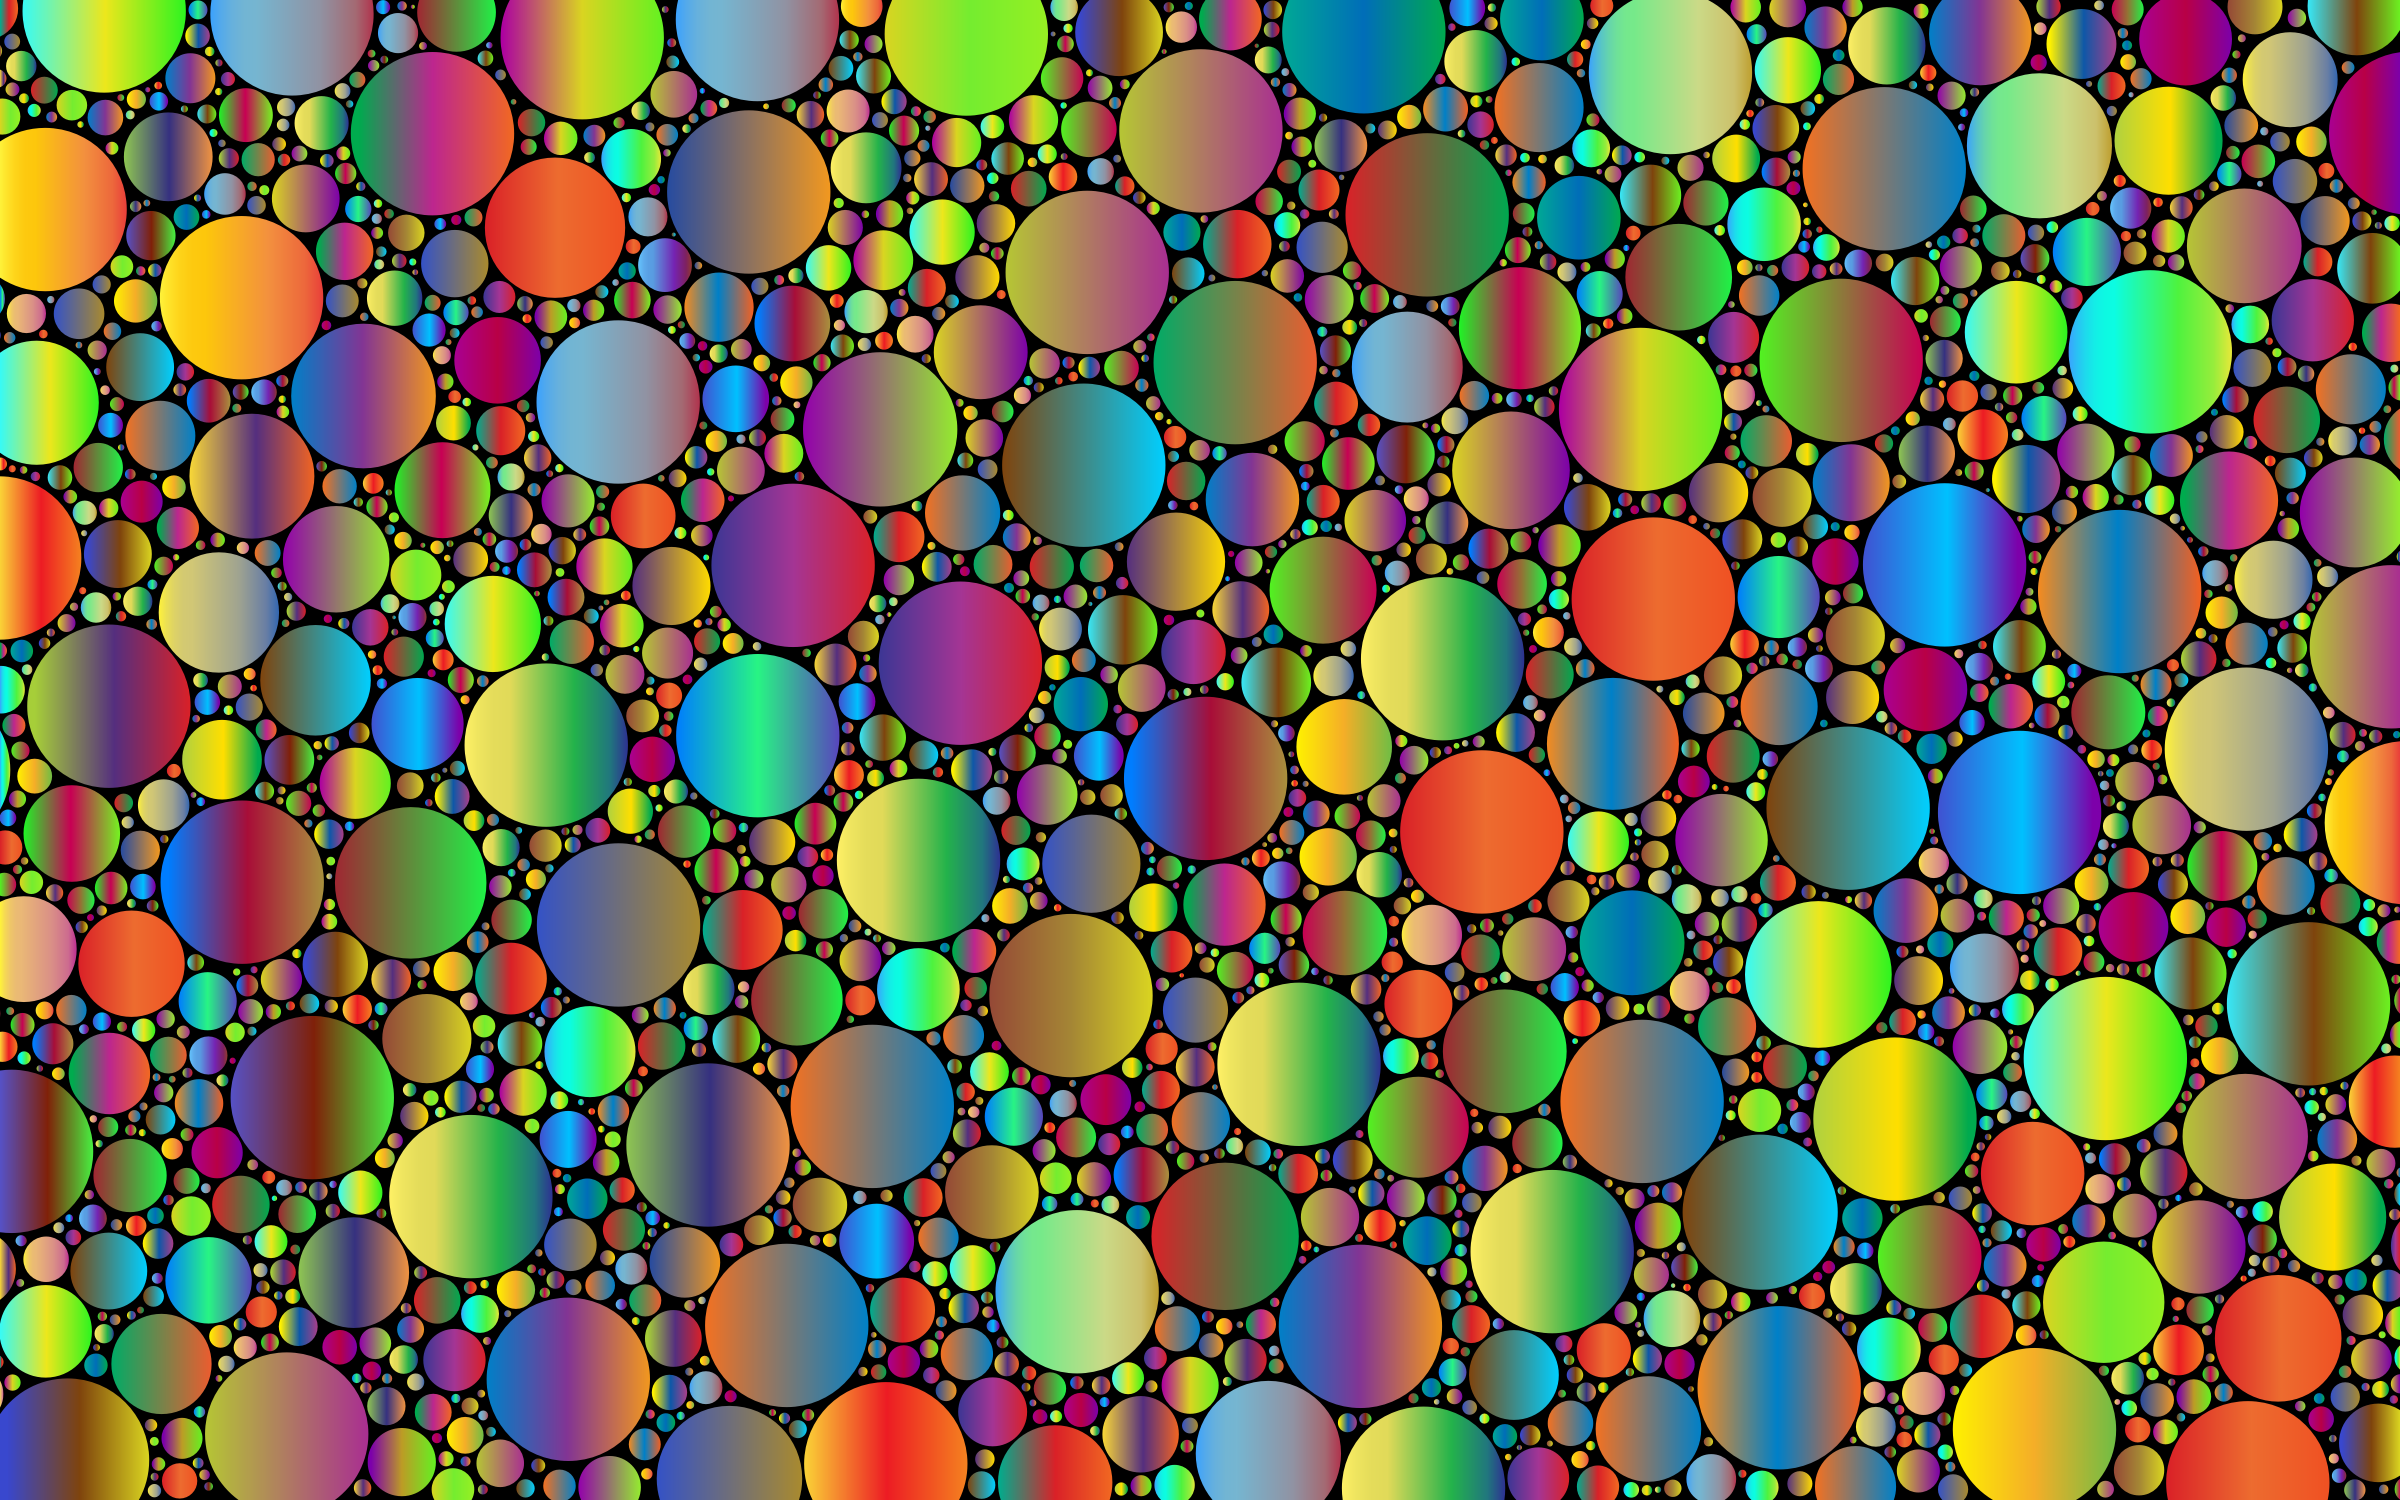 Prismatic Packed Circles 6 by GDJ